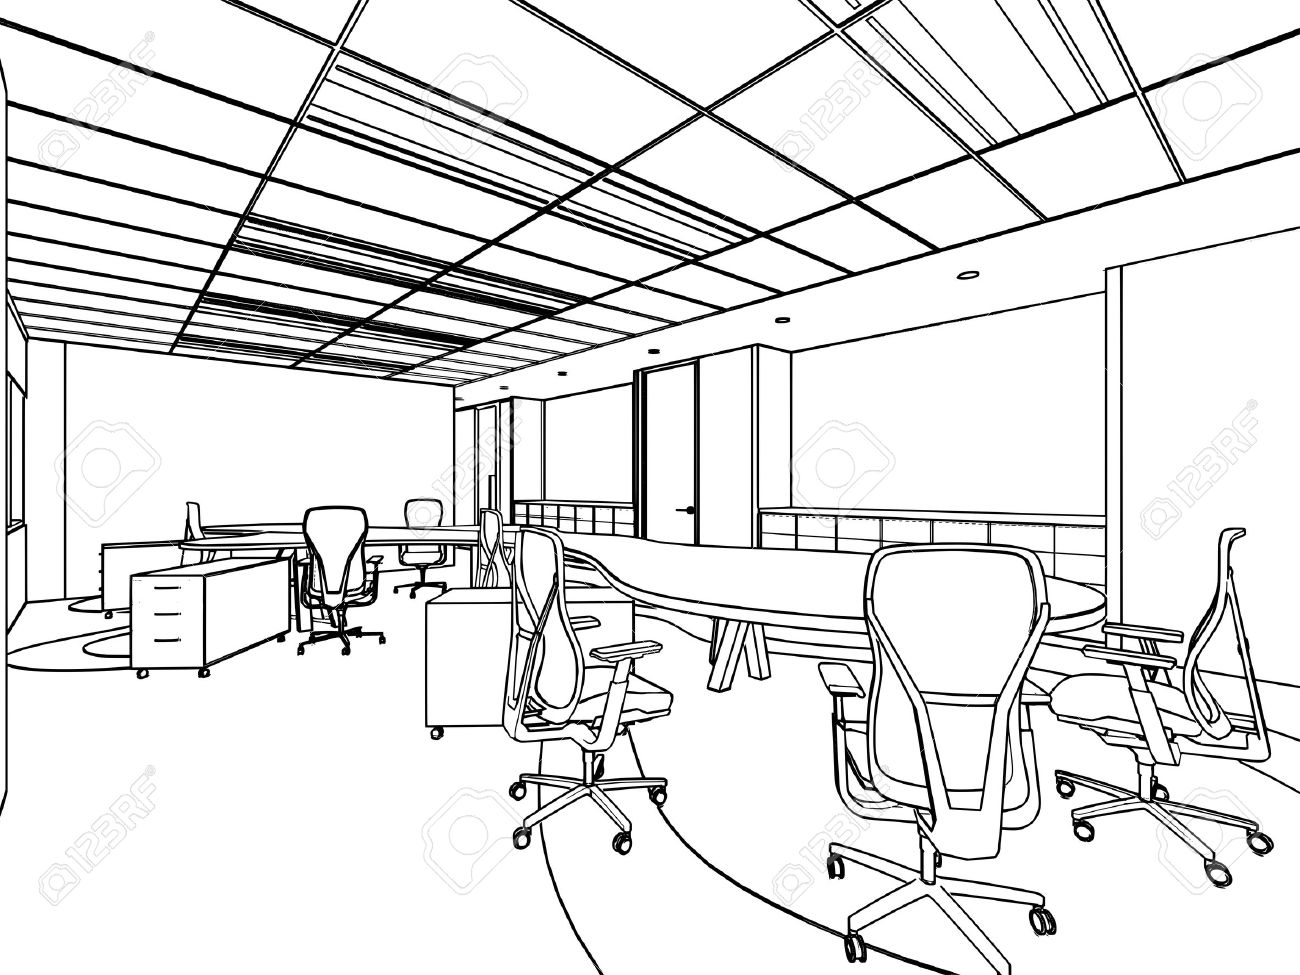 Office furniture design sketches - Outline Sketch Drawing Of A Interior Space Office